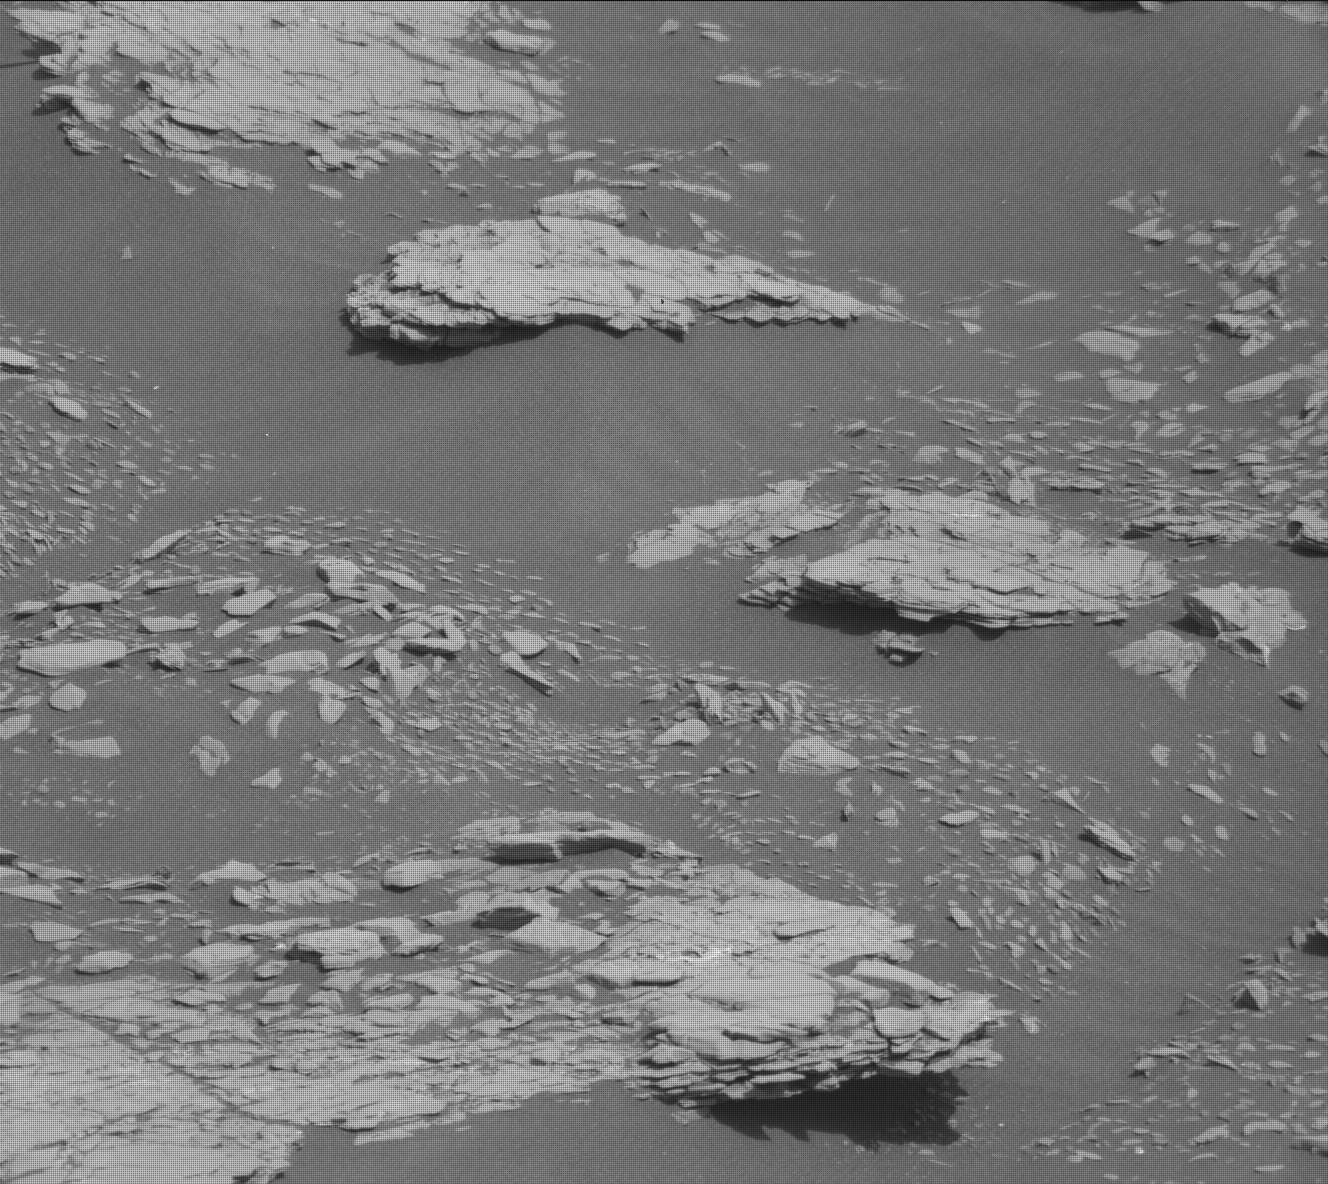 Nasa's Mars rover Curiosity acquired this image using its Mast Camera (Mastcam) on Sol 2891